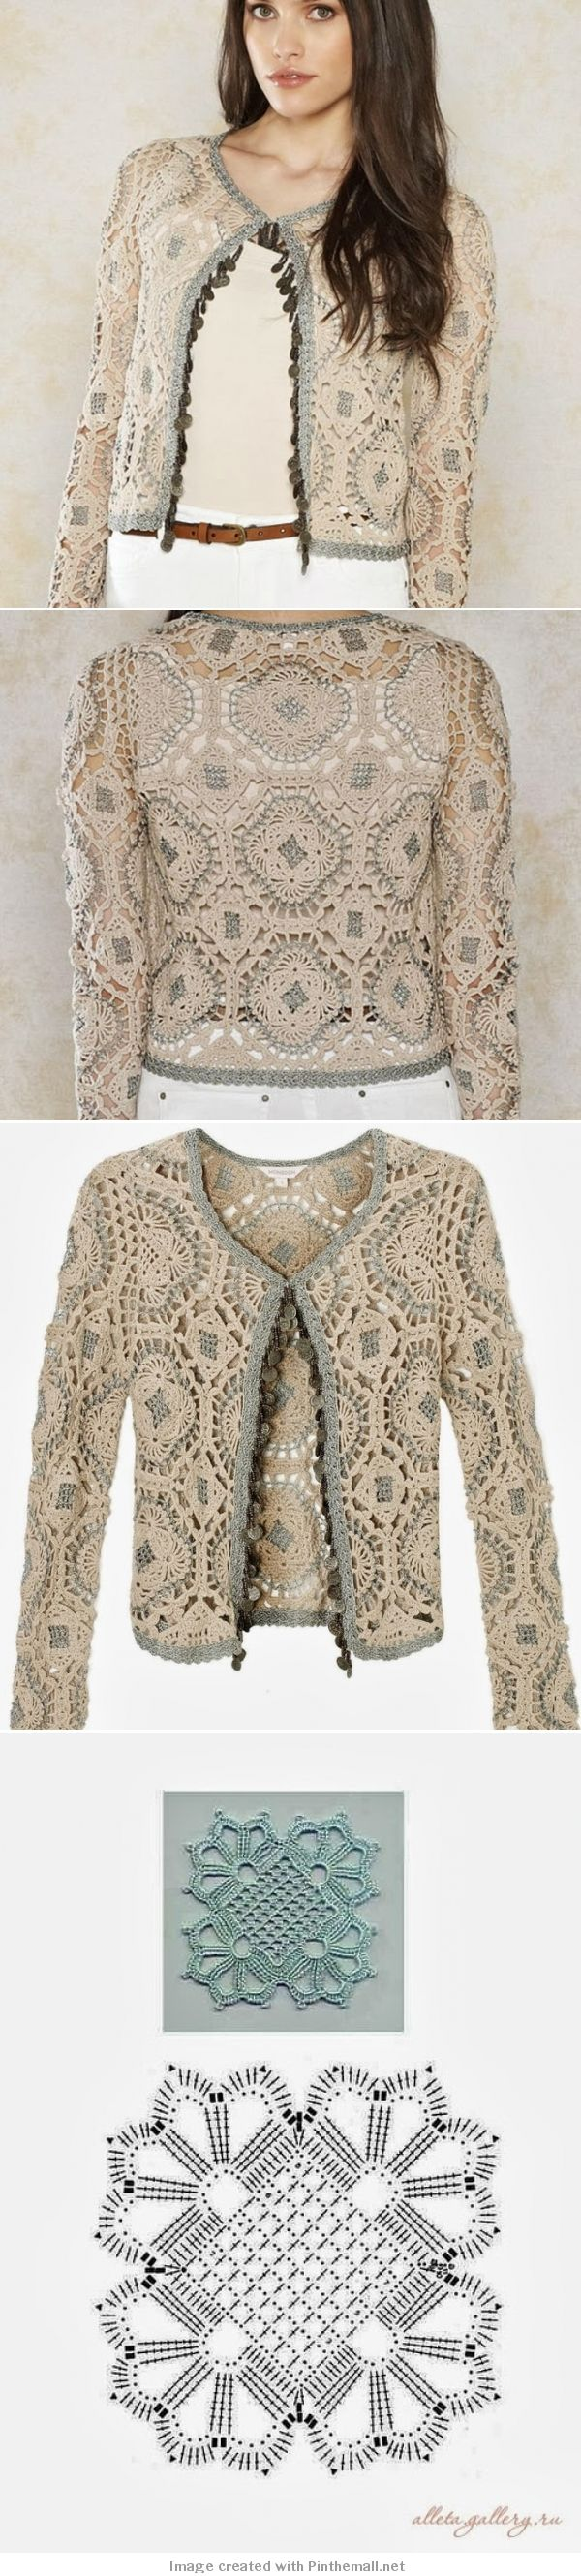 Crochet motif jacket.      http://crochetemoda.blogspot.com/2013/10/casaqueto-de-crochet_24.html @ Af's Collection